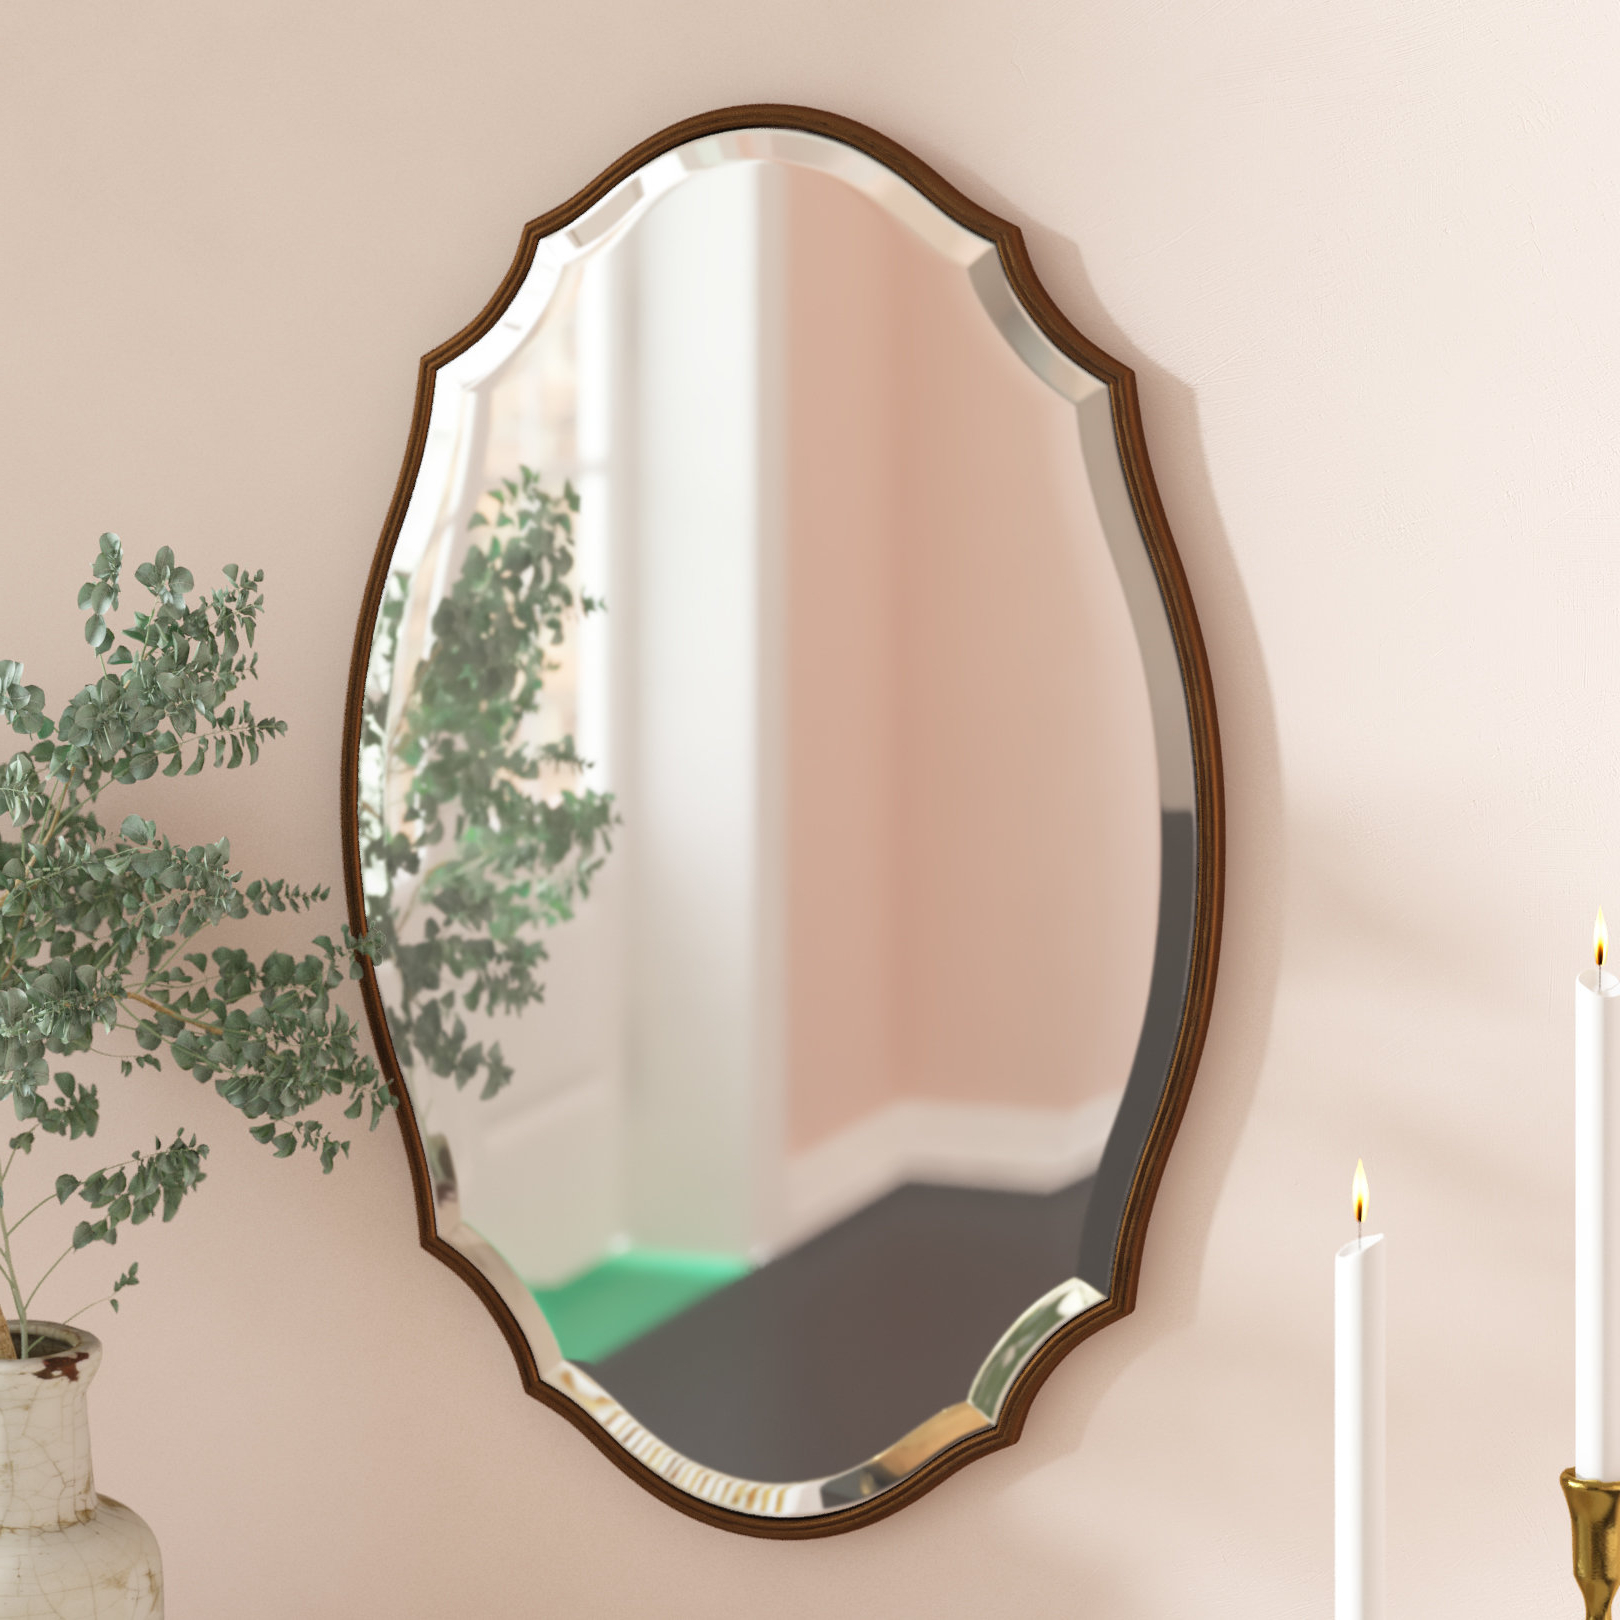 Guidinha Modern & Contemporary Accent Mirrors Regarding Newest Modern & Contemporary Beveled Accent Mirror (Gallery 4 of 20)